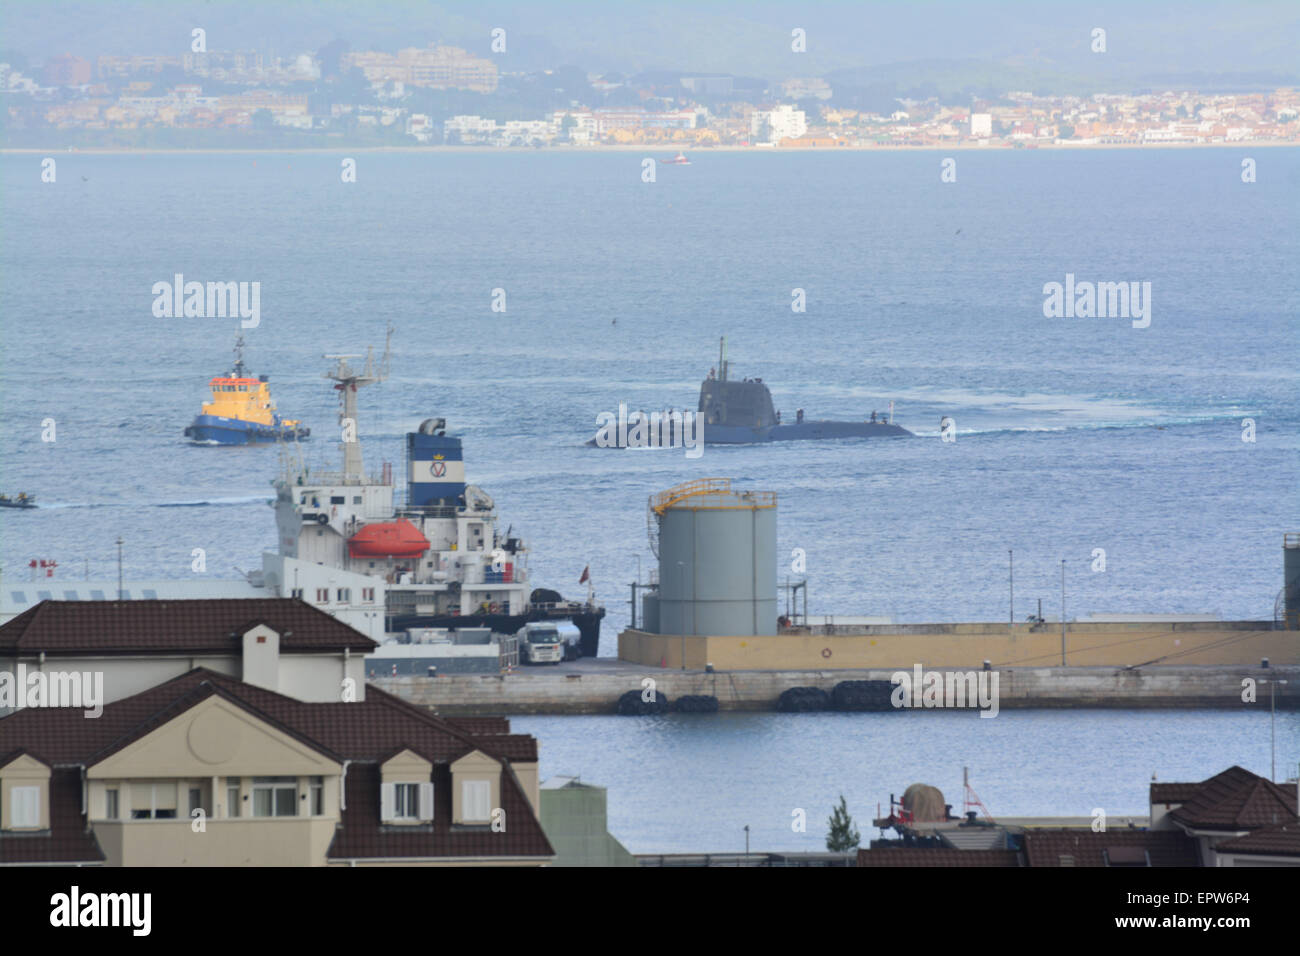 Gibraltar - 21st May 2015 - The arrival of an Astute class nuclear submarine into the Bay of Gibraltar today saw - Stock Image